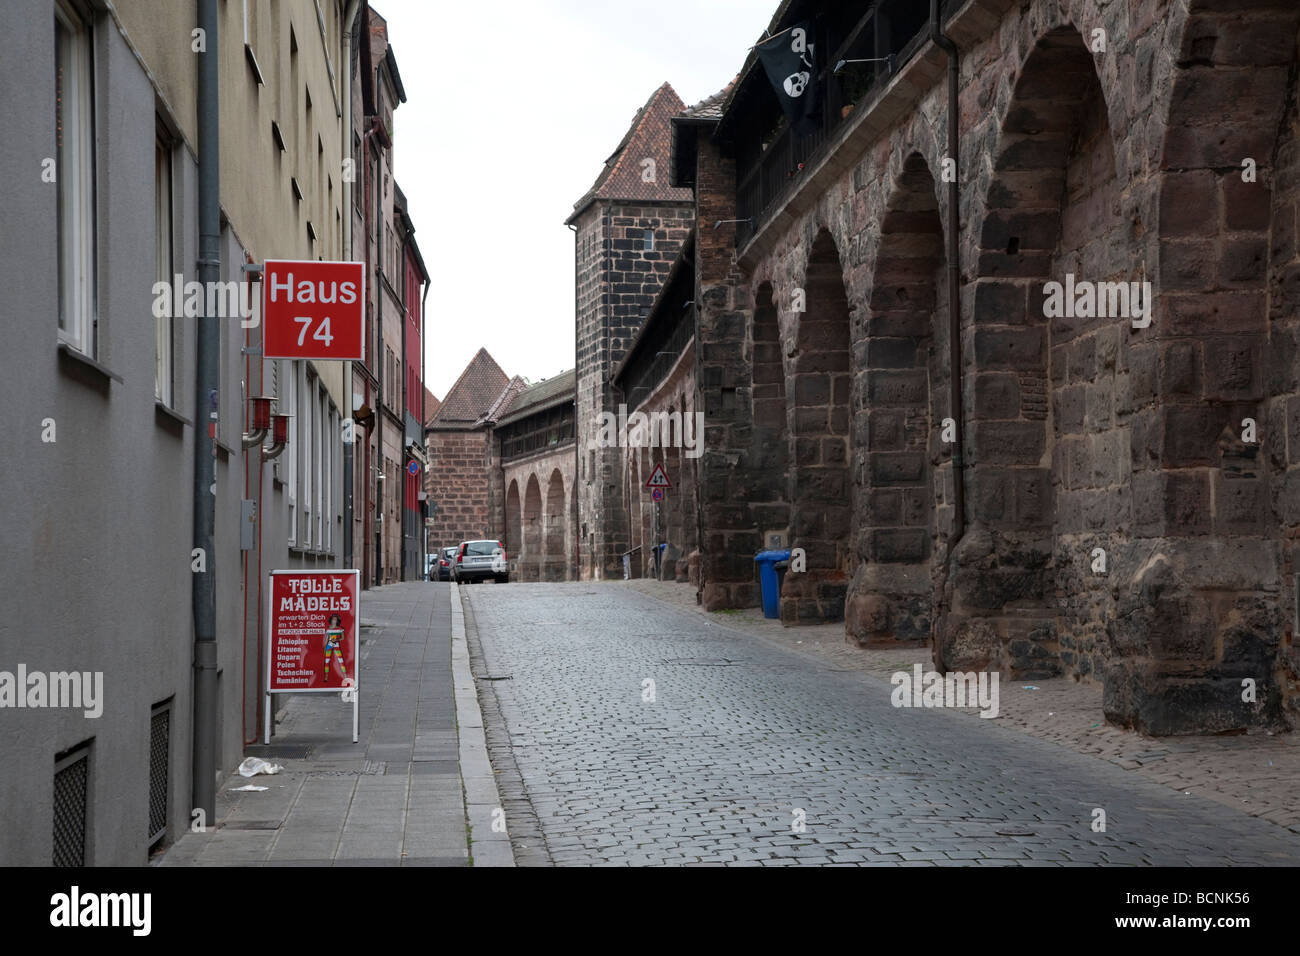 Woman in Nuremberg